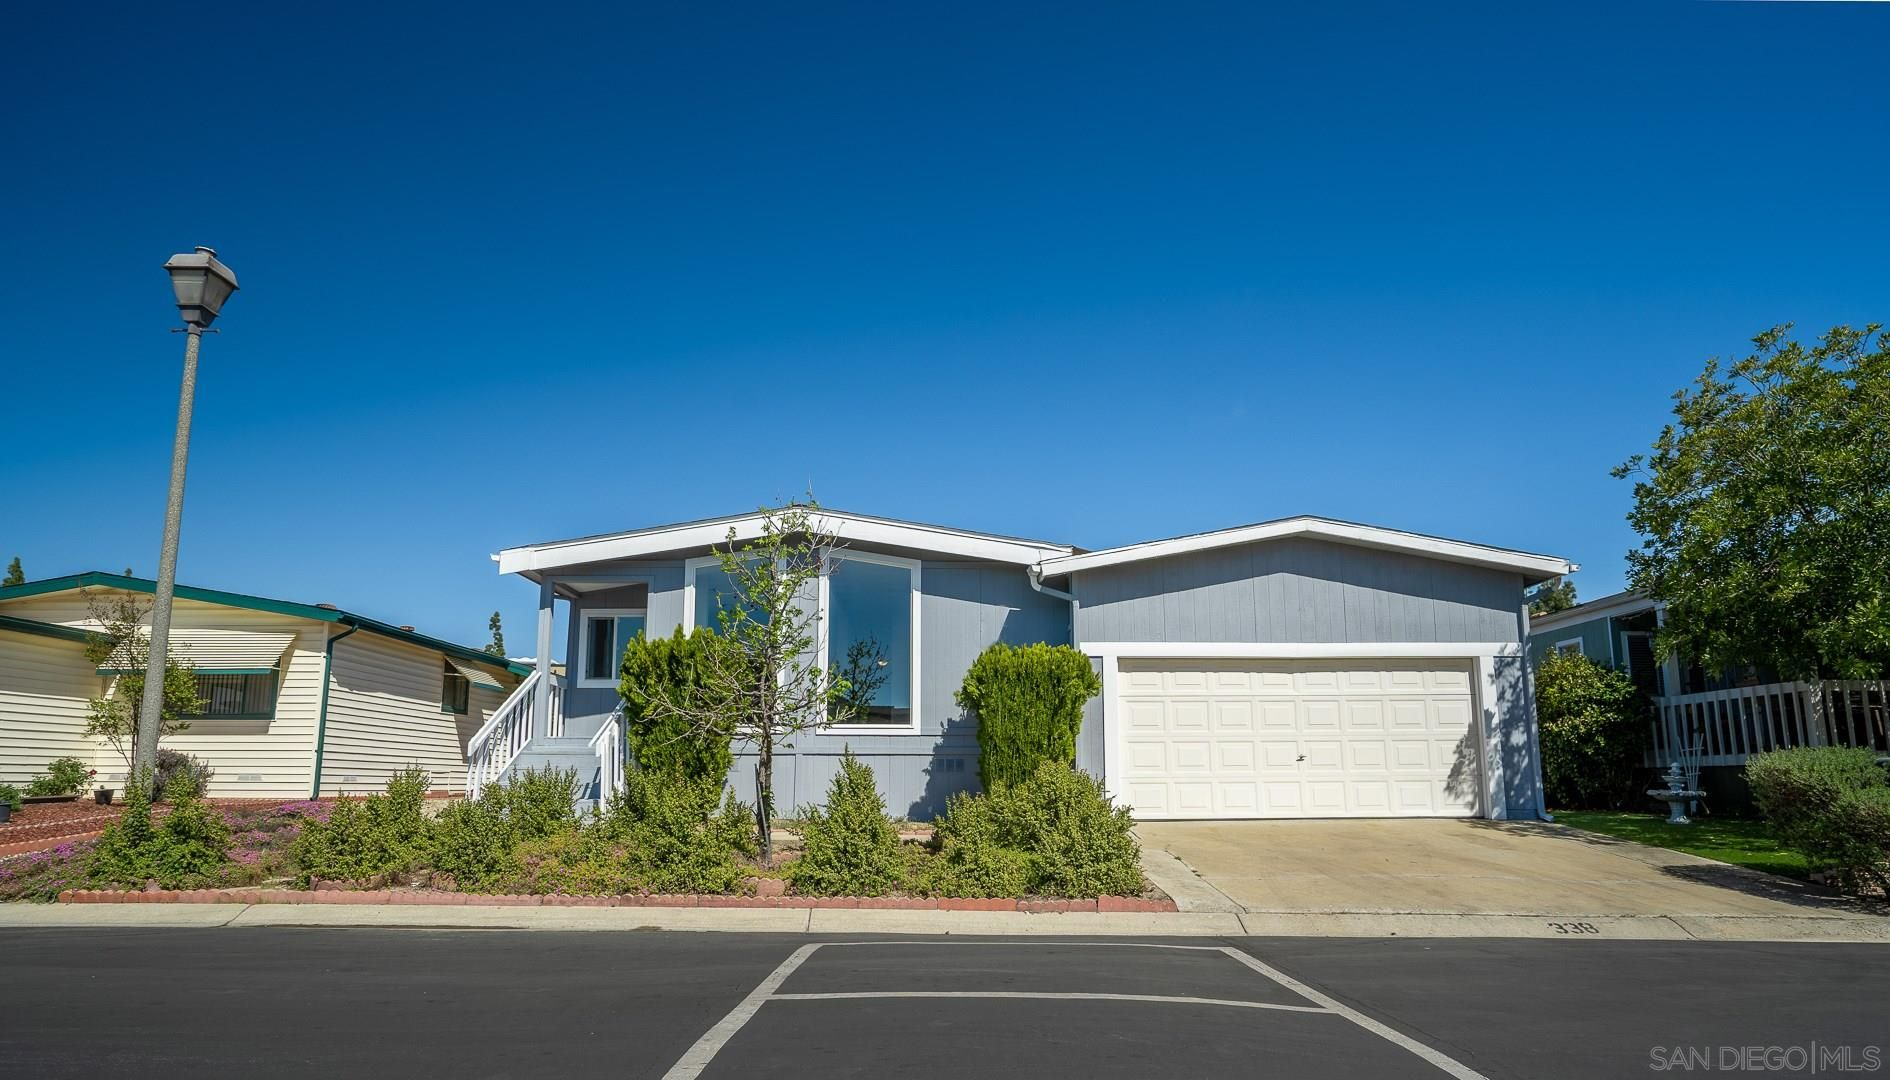 Main Photo: SANTEE Manufactured Home for sale : 3 bedrooms : 9255 N Magnolia Ave #338